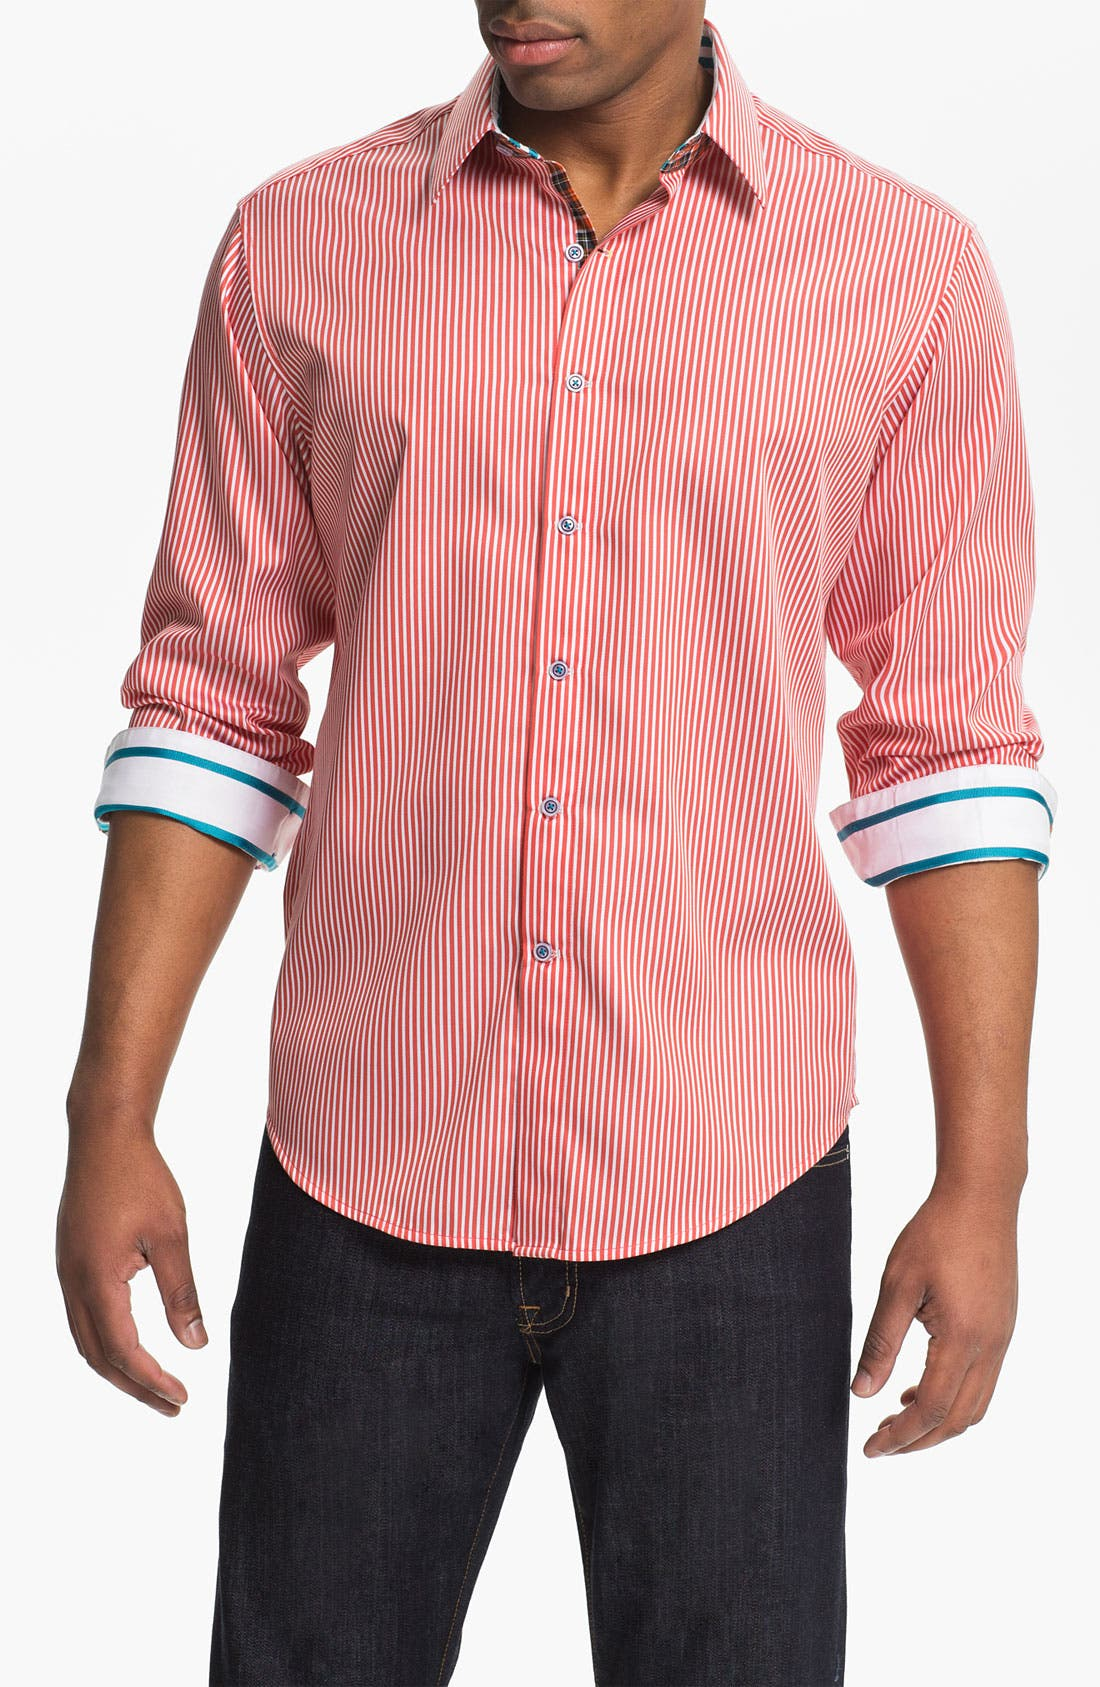 Main Image - Robert Graham 'Nemo' Sport Shirt